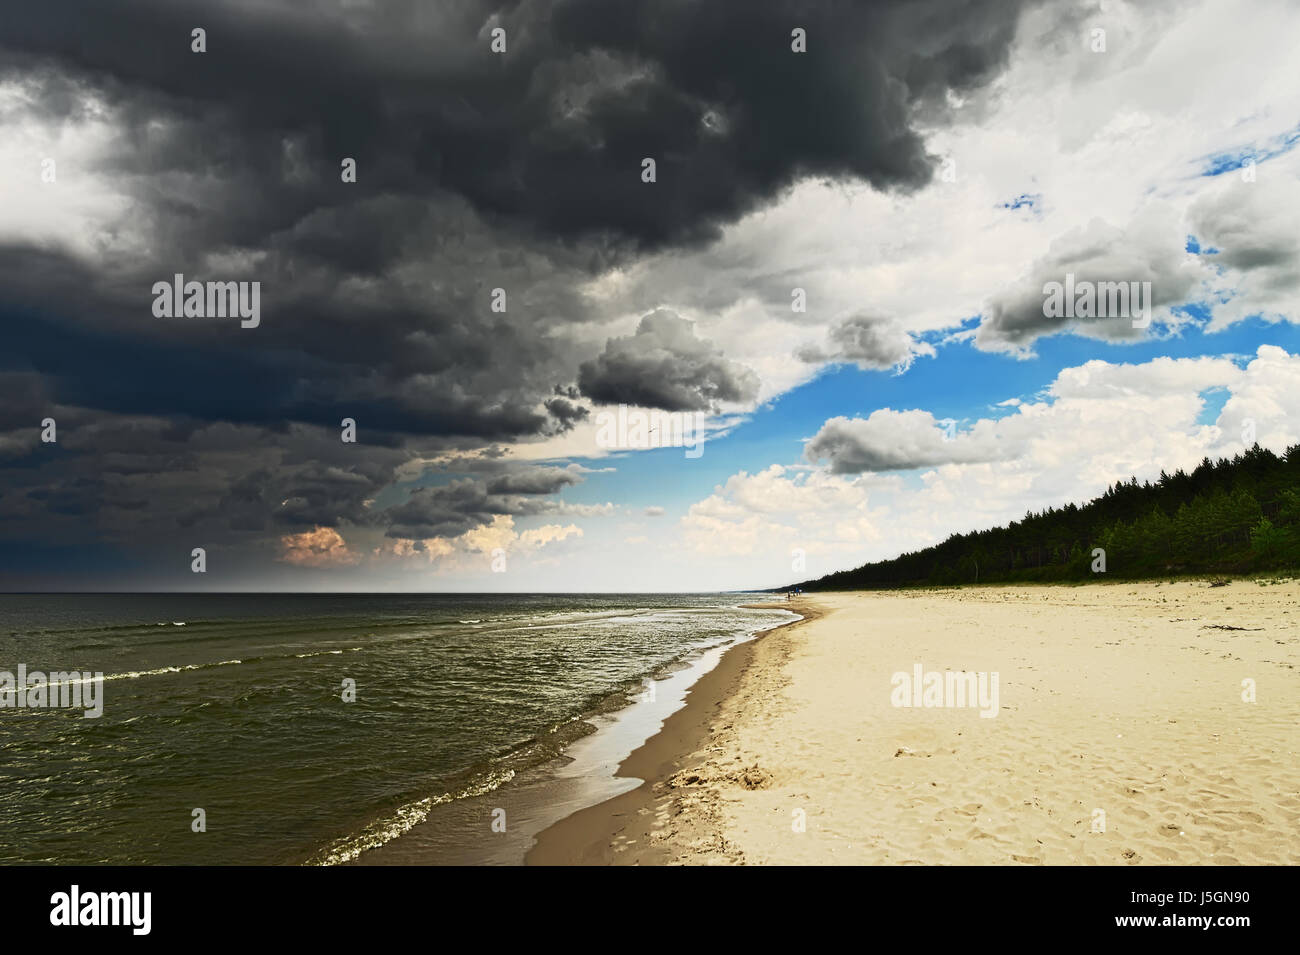 Seascape with dark, dramatic, stormy cumulonimbus cloud formation over the beach at Baltic sea. Stegna, Pomerania, - Stock Image